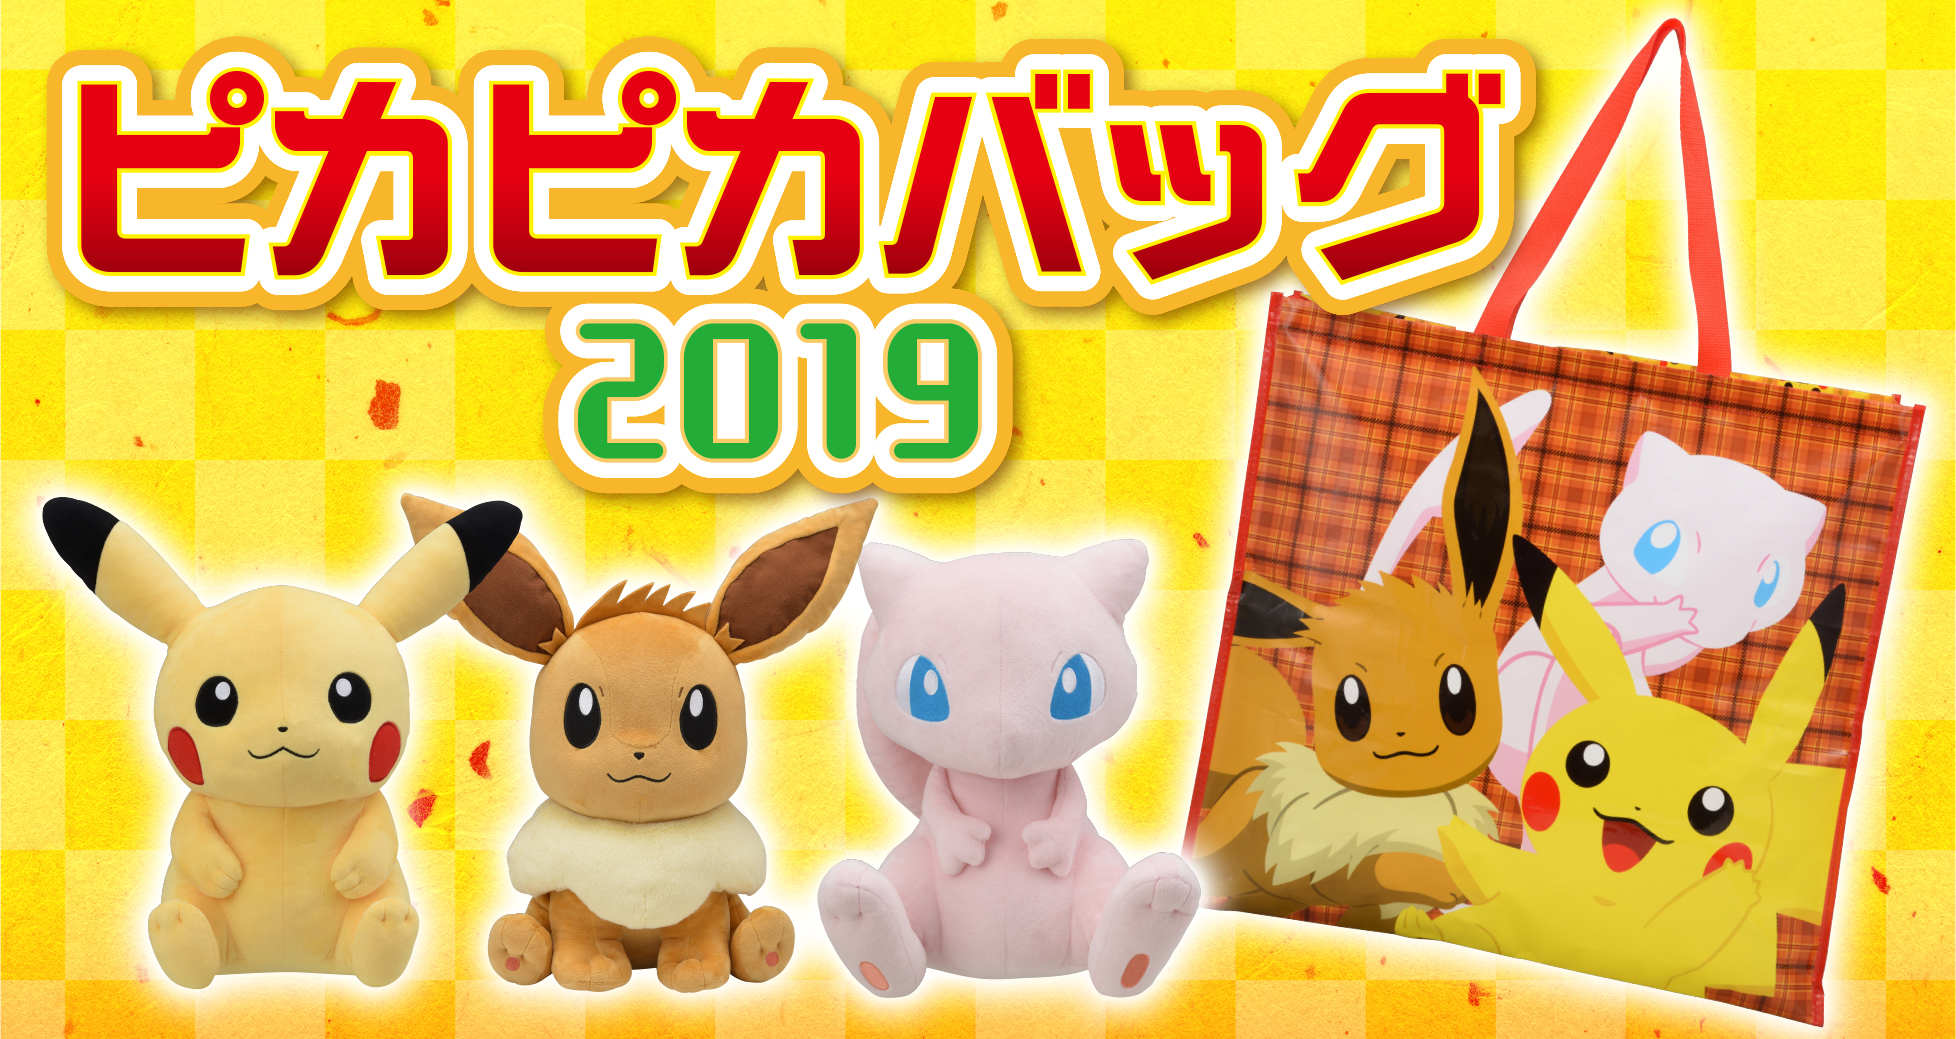 https://voice.pokemon.co.jp/stv/nagoya/%E3%81%8A%E6%AD%A3%E6%9C%88.jpg